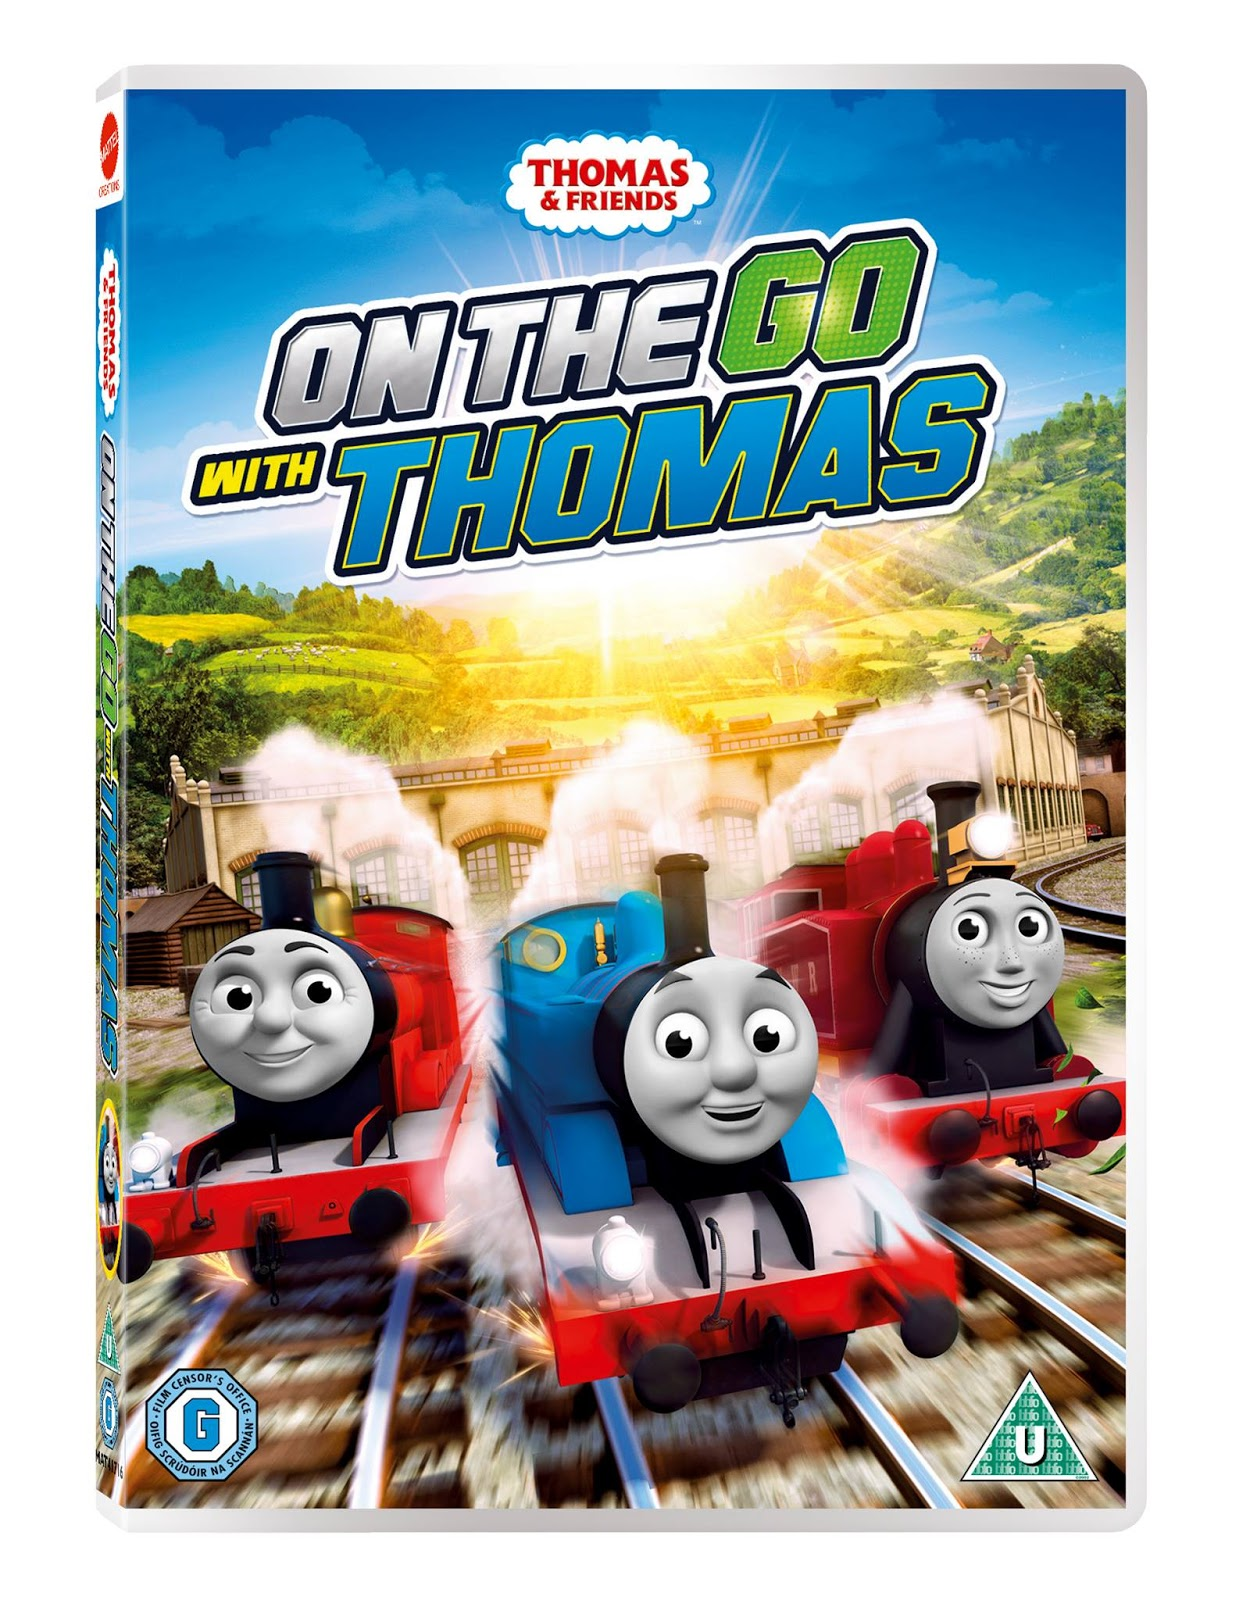 The Thomas And Friends Review Station Dvd Review On The Go With Thomas